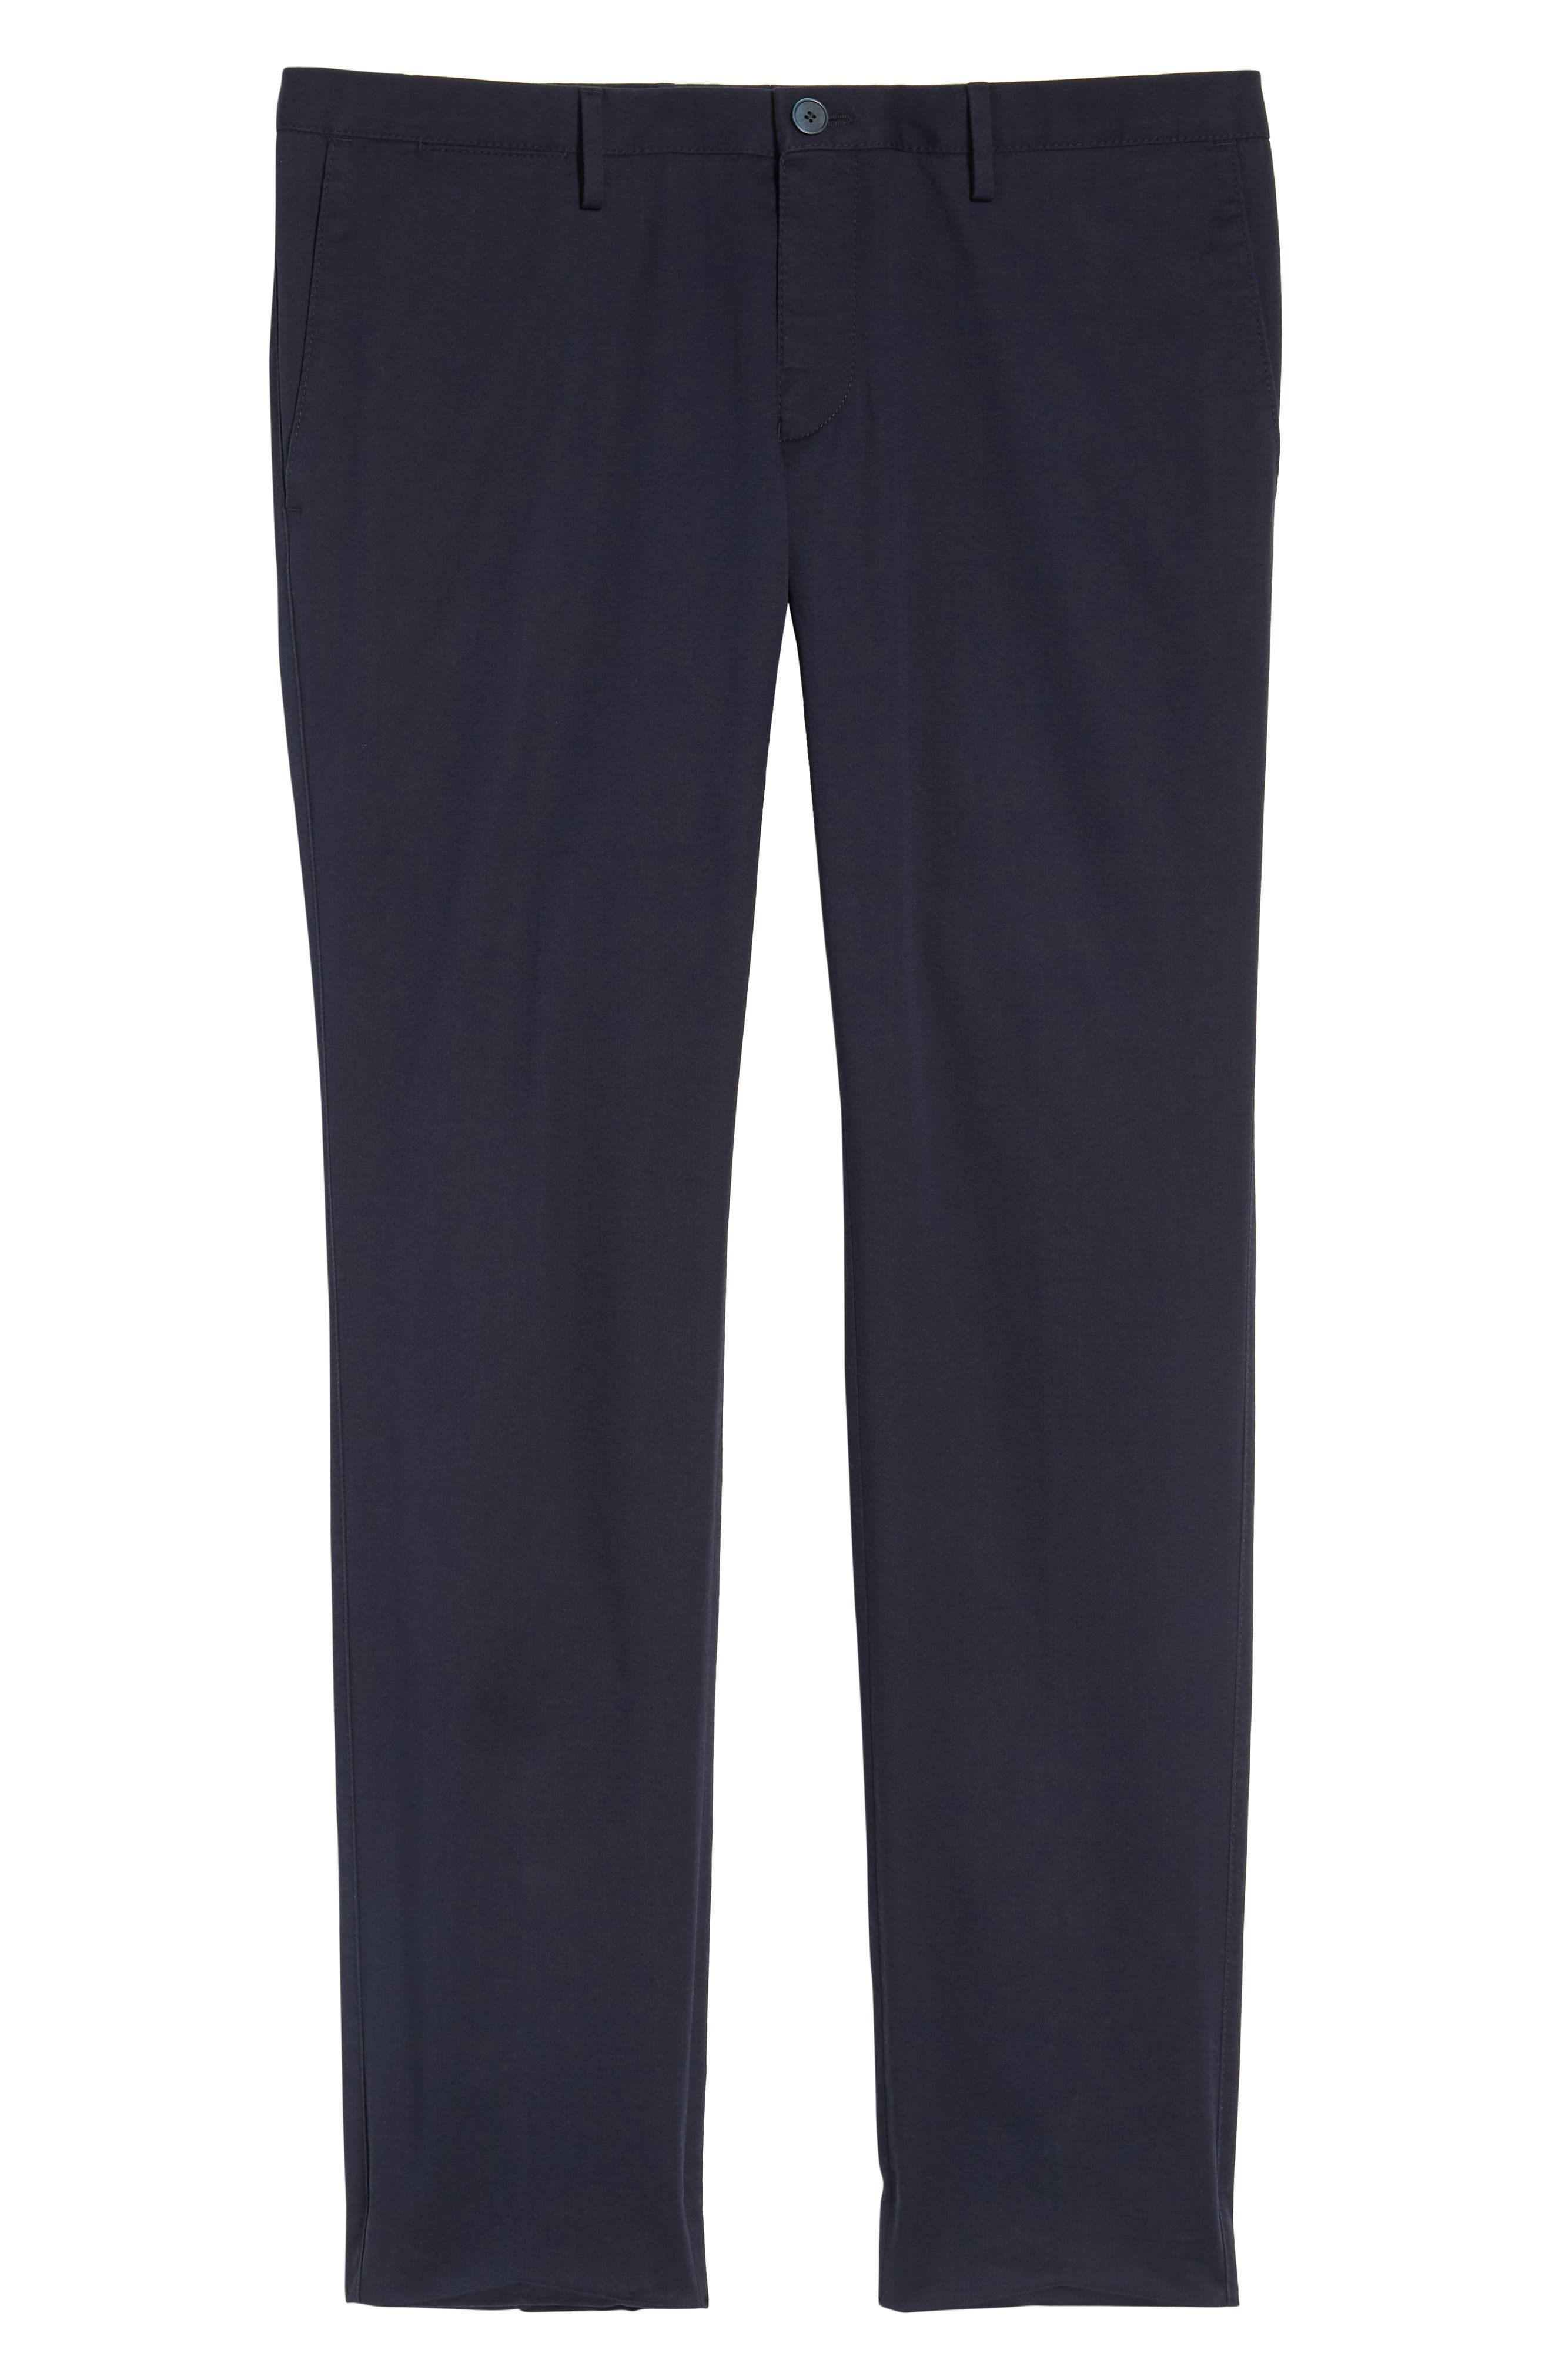 Stanino-W Flat Front Stretch Cotton Trousers,                             Alternate thumbnail 6, color,                             Navy